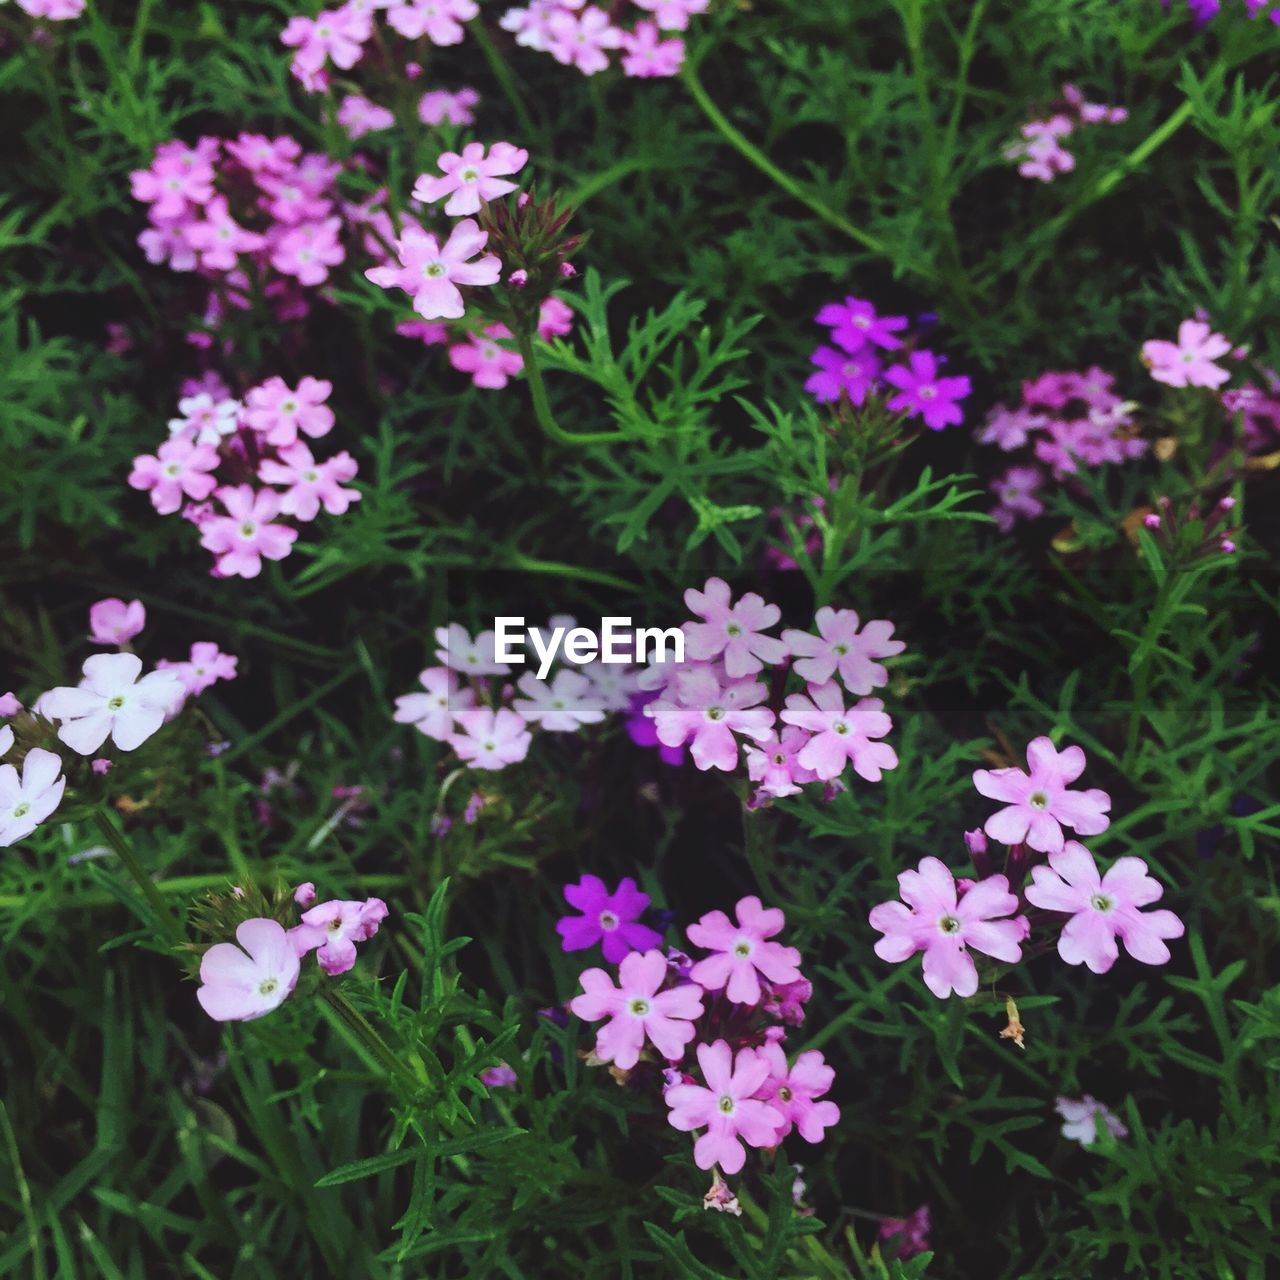 flower, growth, plant, fragility, beauty in nature, nature, freshness, petal, outdoors, no people, day, blooming, focus on foreground, pink color, flower head, close-up, periwinkle